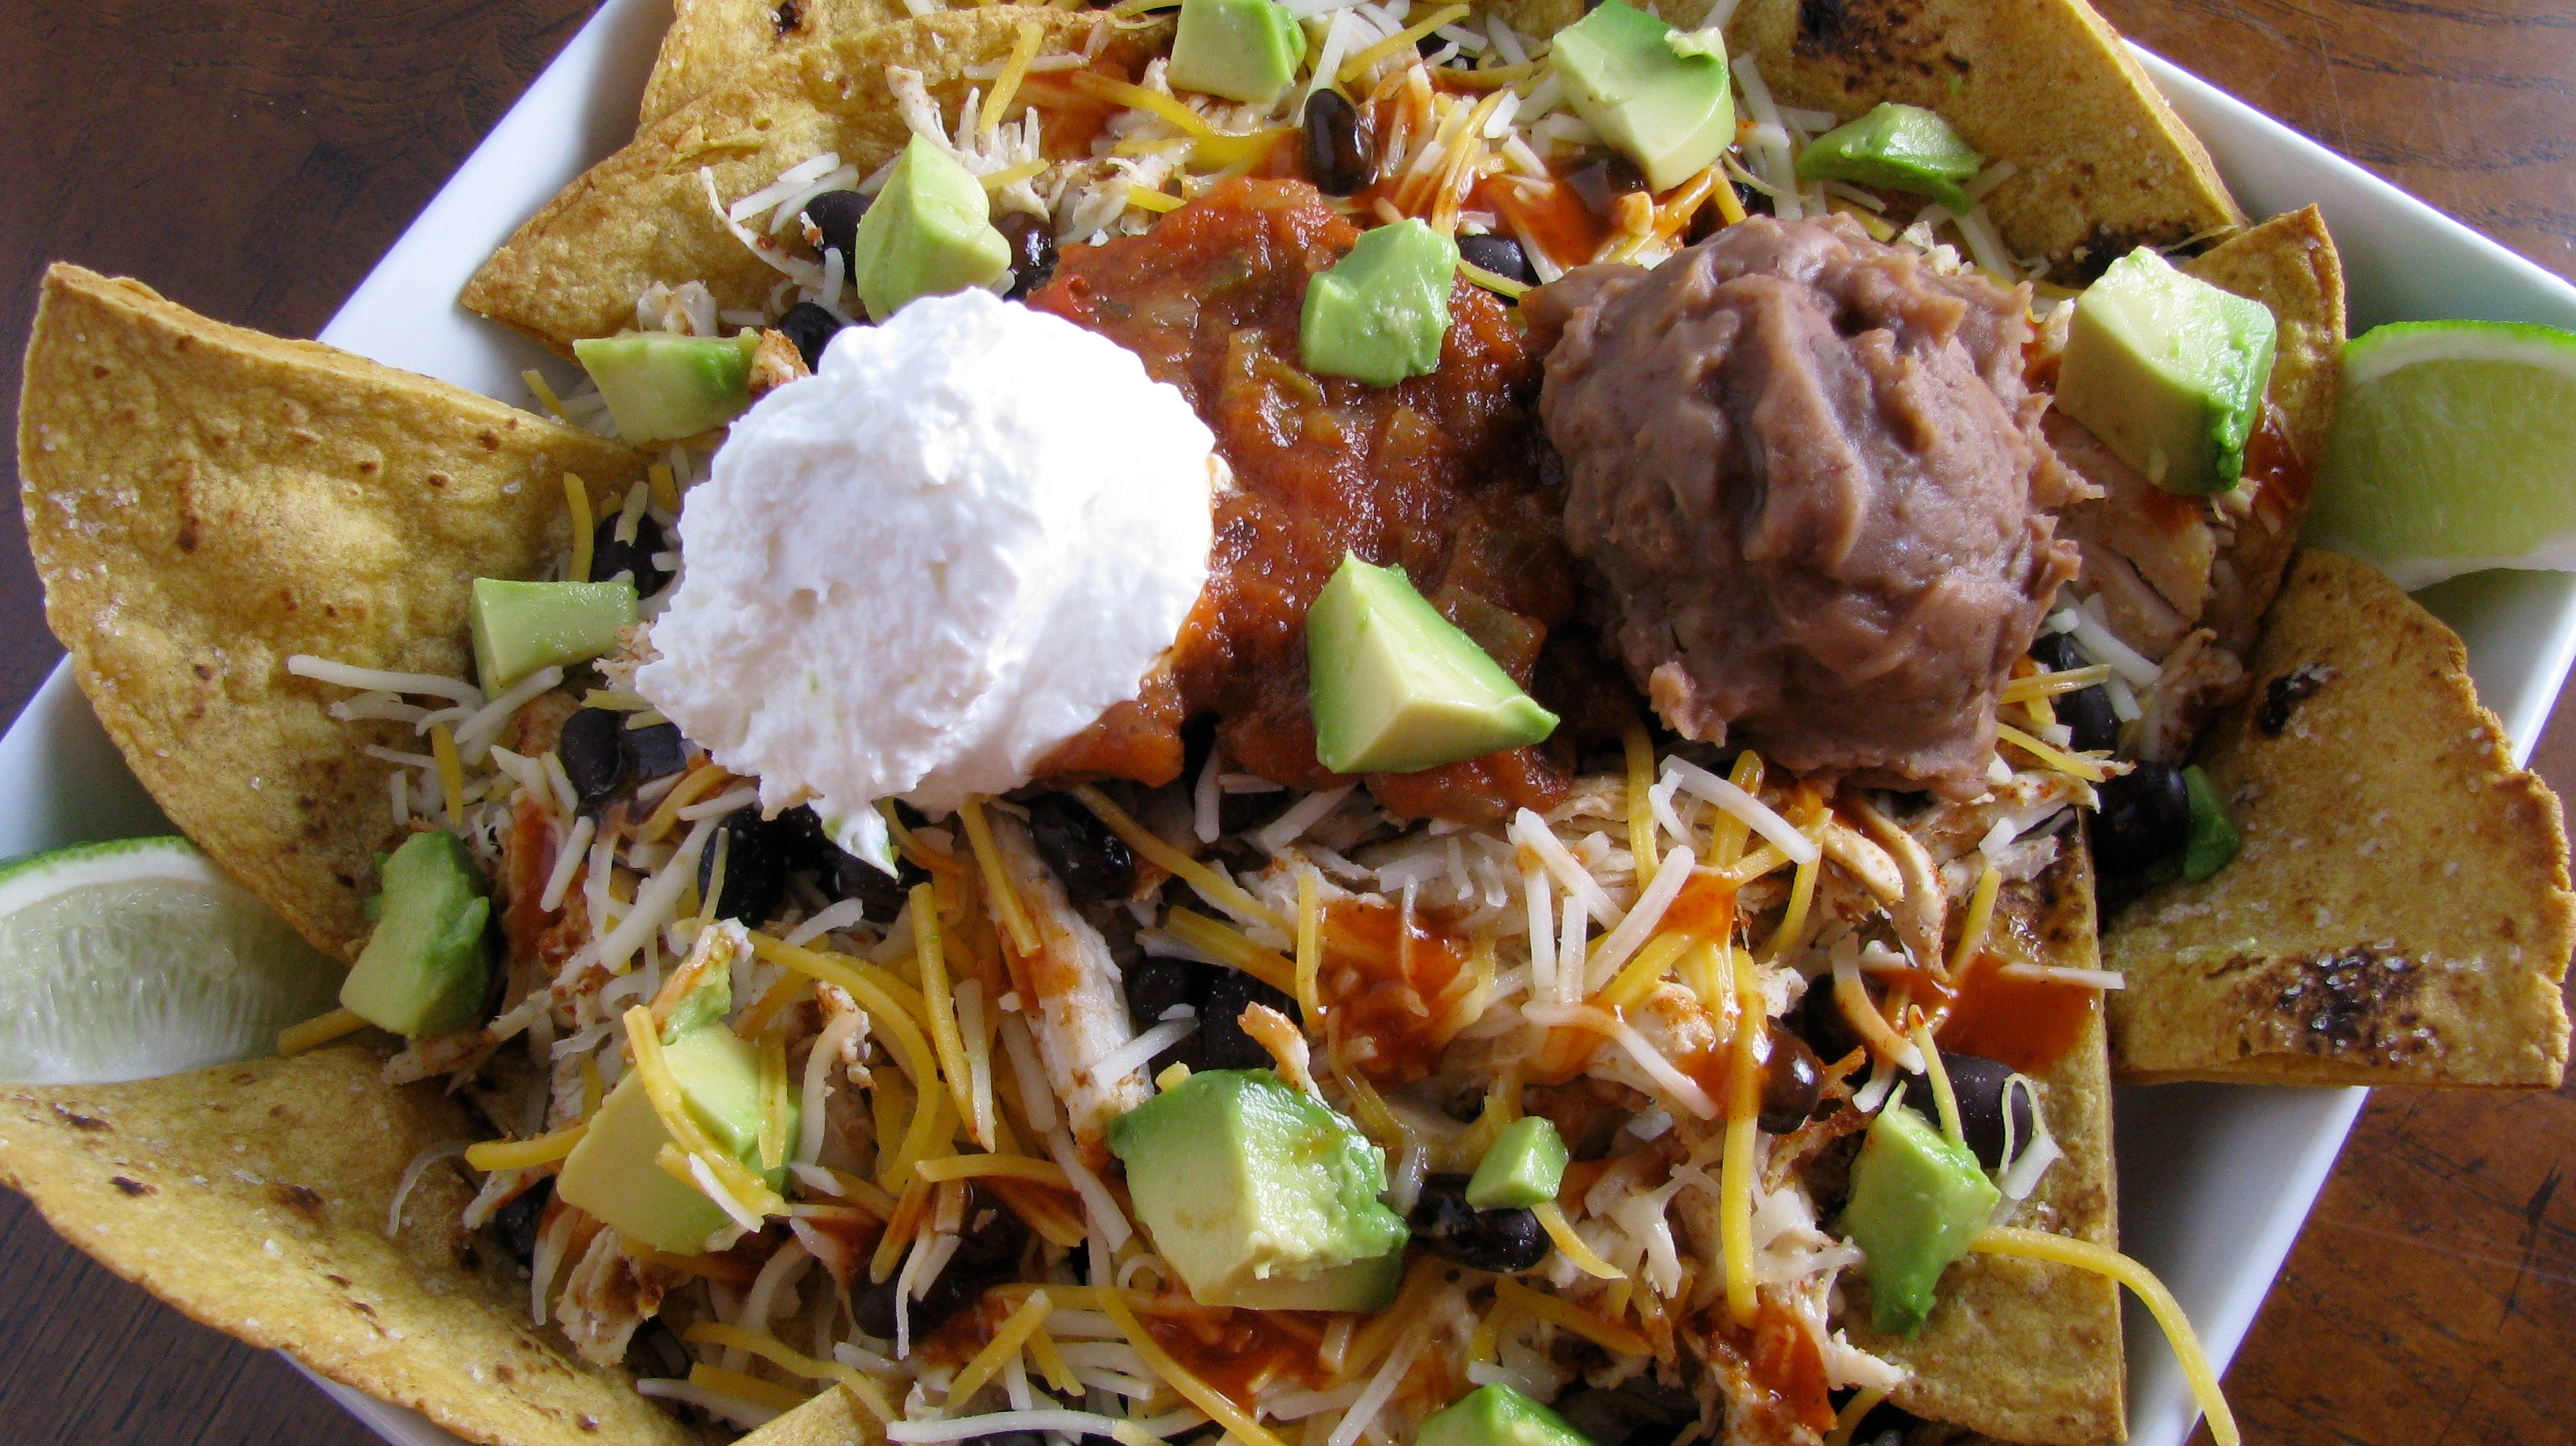 Loaded Baked Nachos The Healthy Way How Sweet Eats